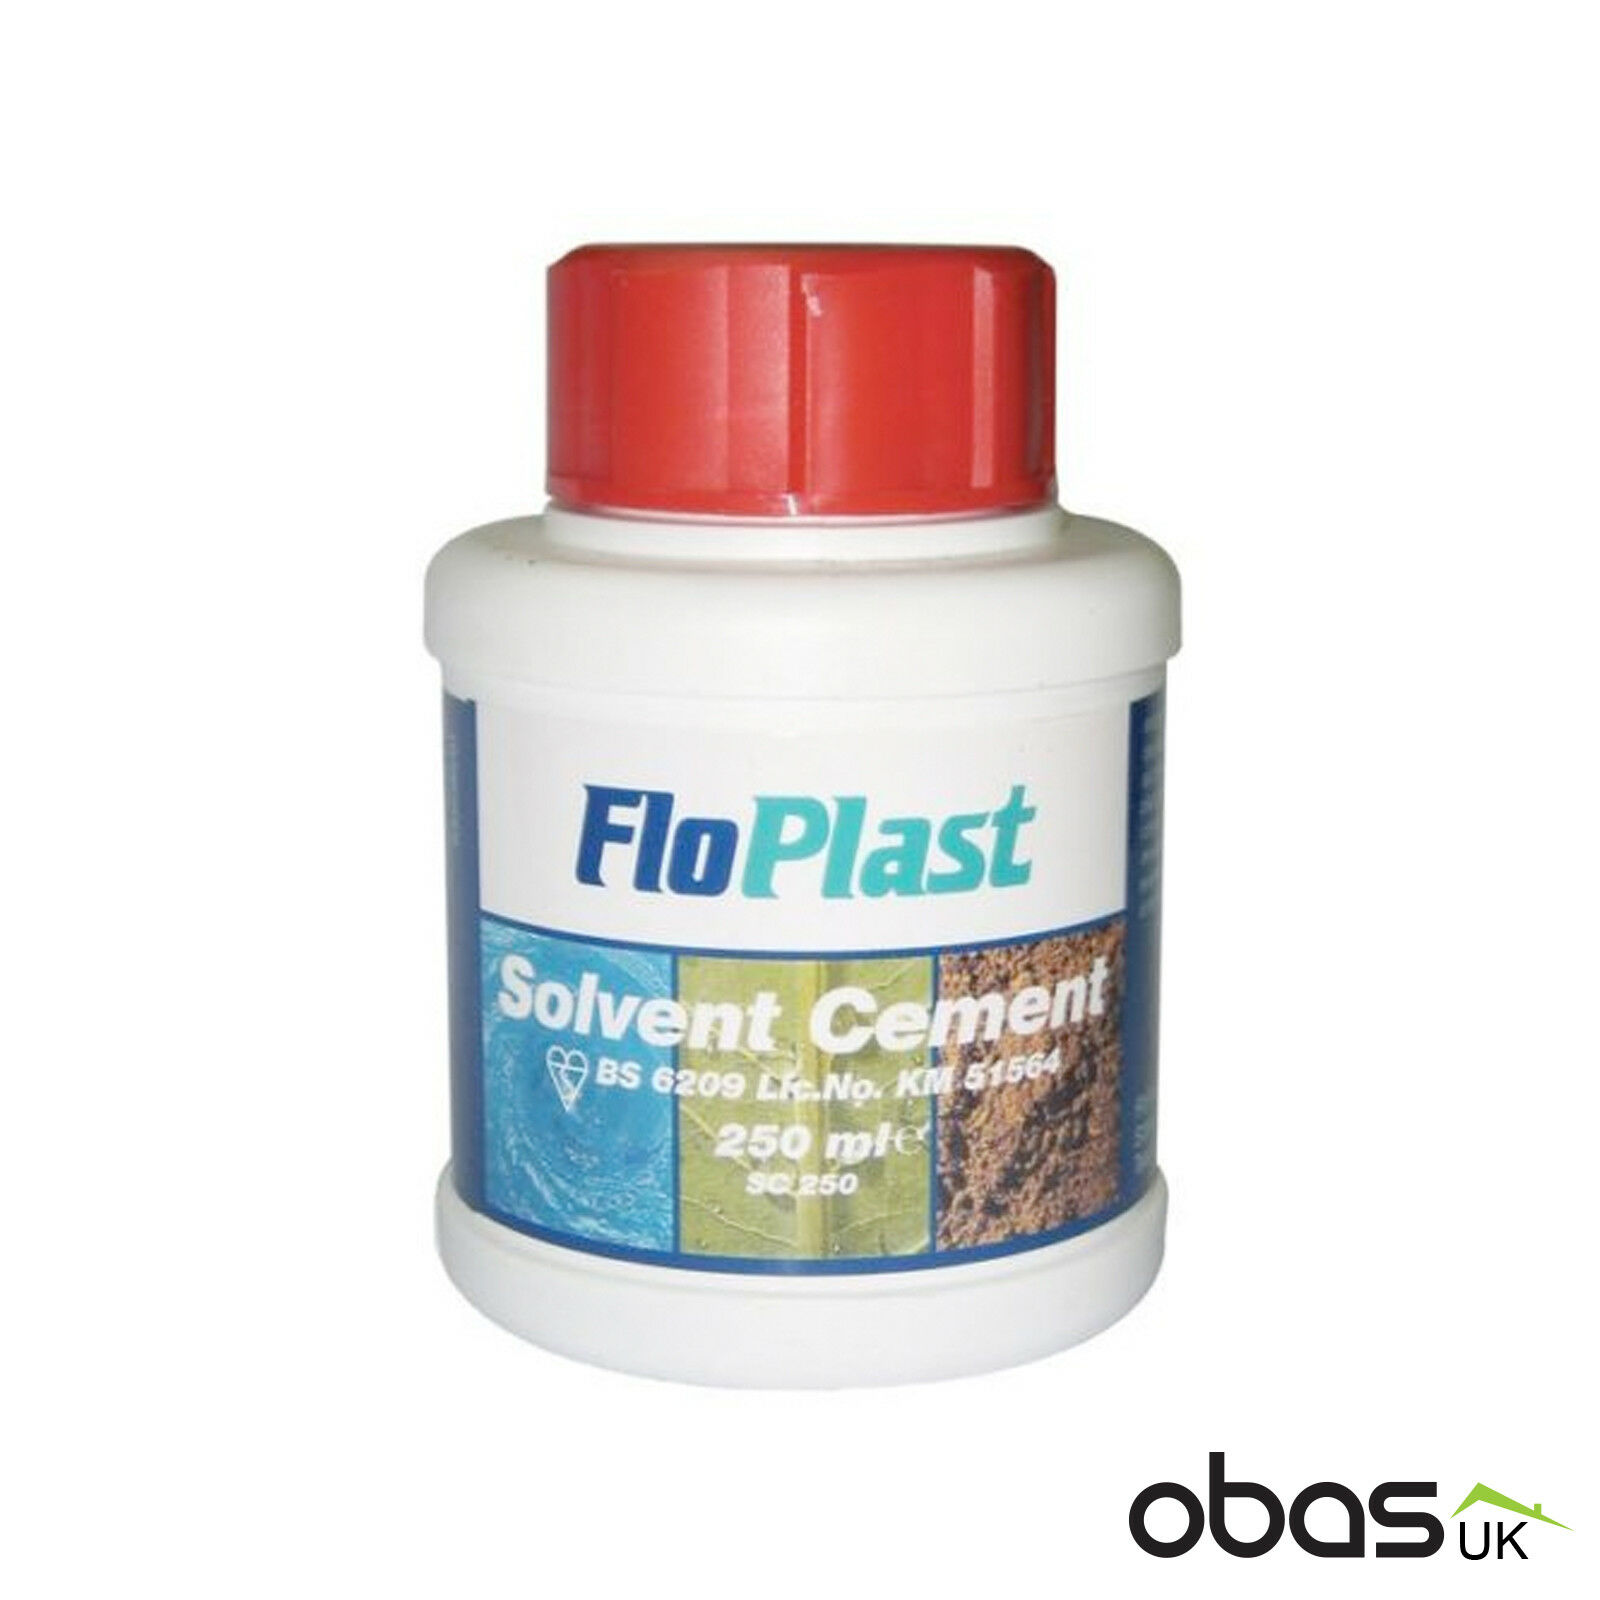 Abs Glue Details About Floplast Solvent Cement Plastic Bonding Adhesive Glue For Abs Pvc Pipe 250ml